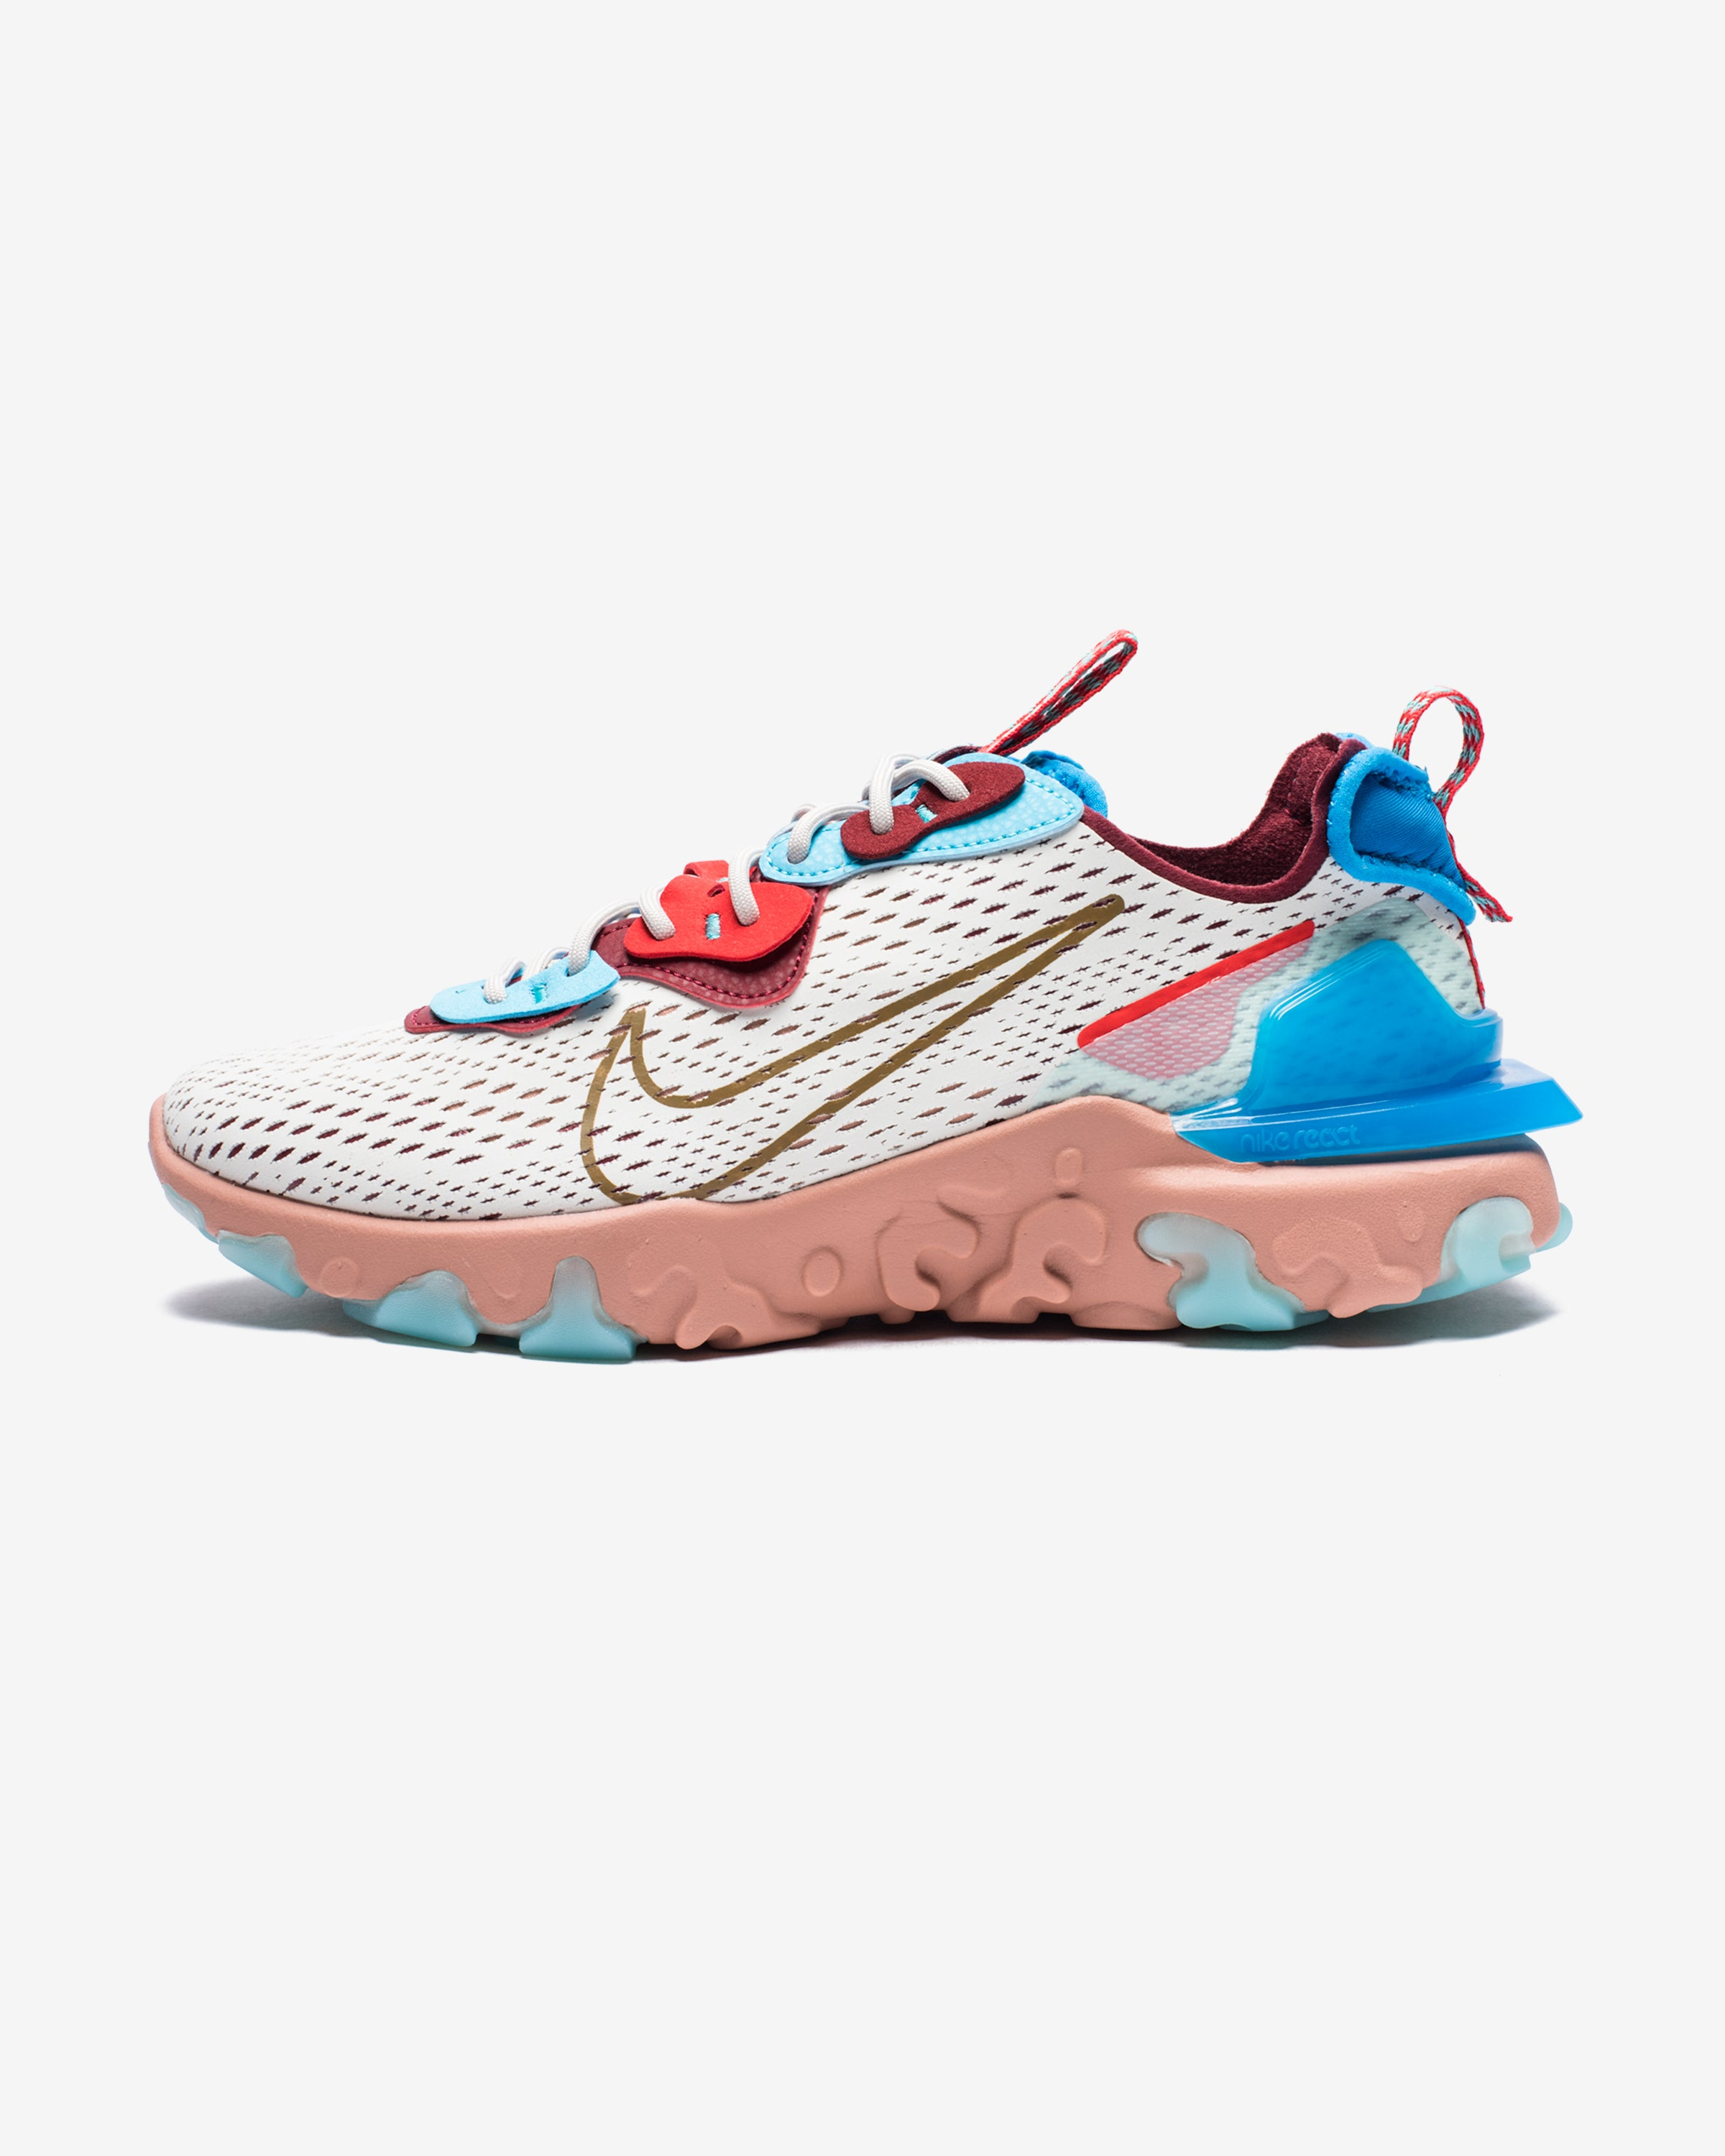 REACT VISION - LIGHTBONE/ TERRABLUSH/ PHOTOBLUE